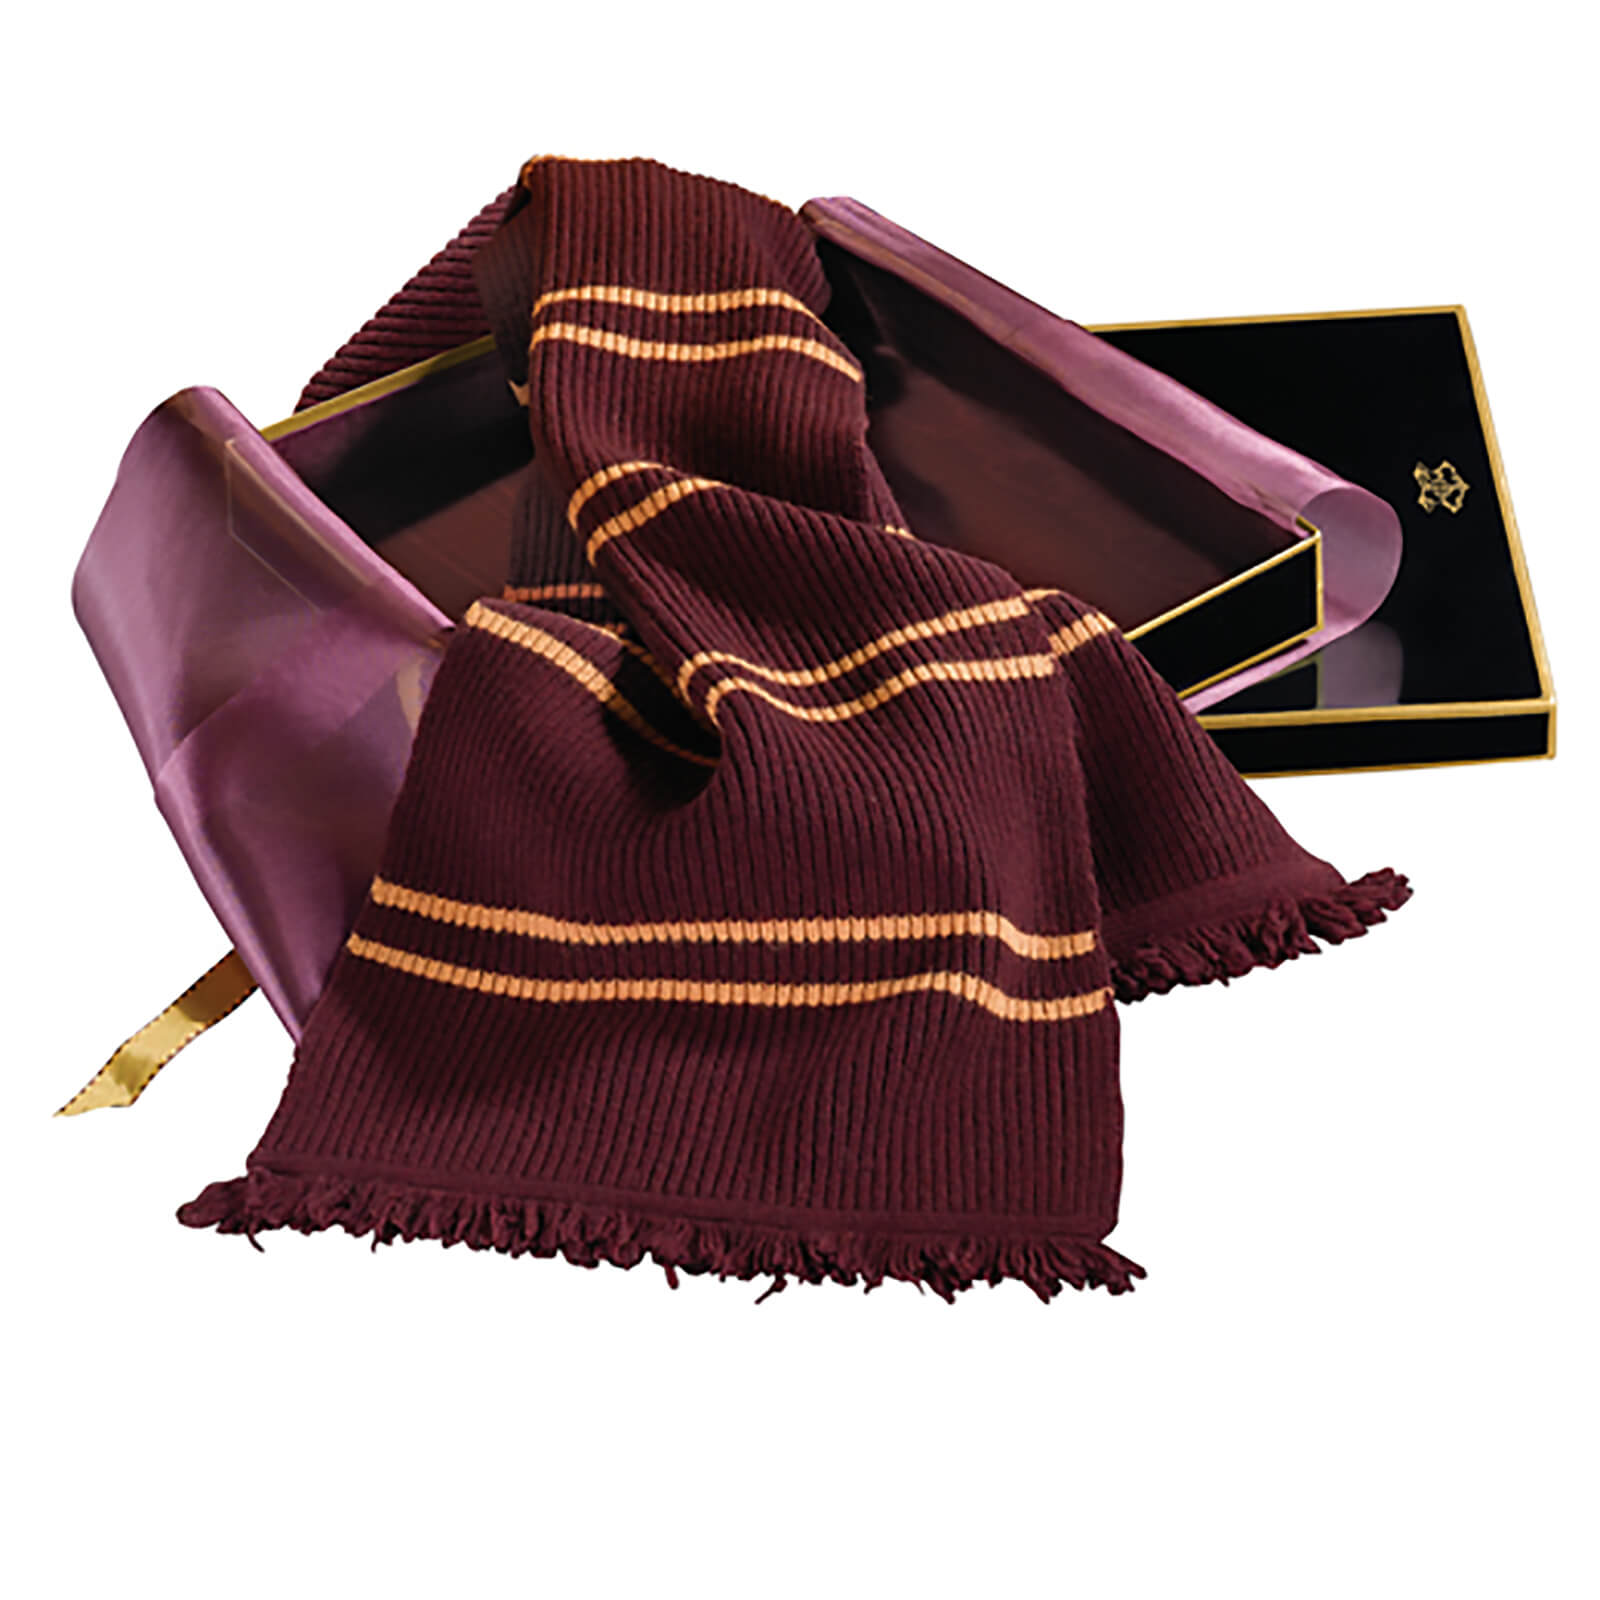 Harry Potter Lambs Wool Gryffindor Scarf in Madam Malkin